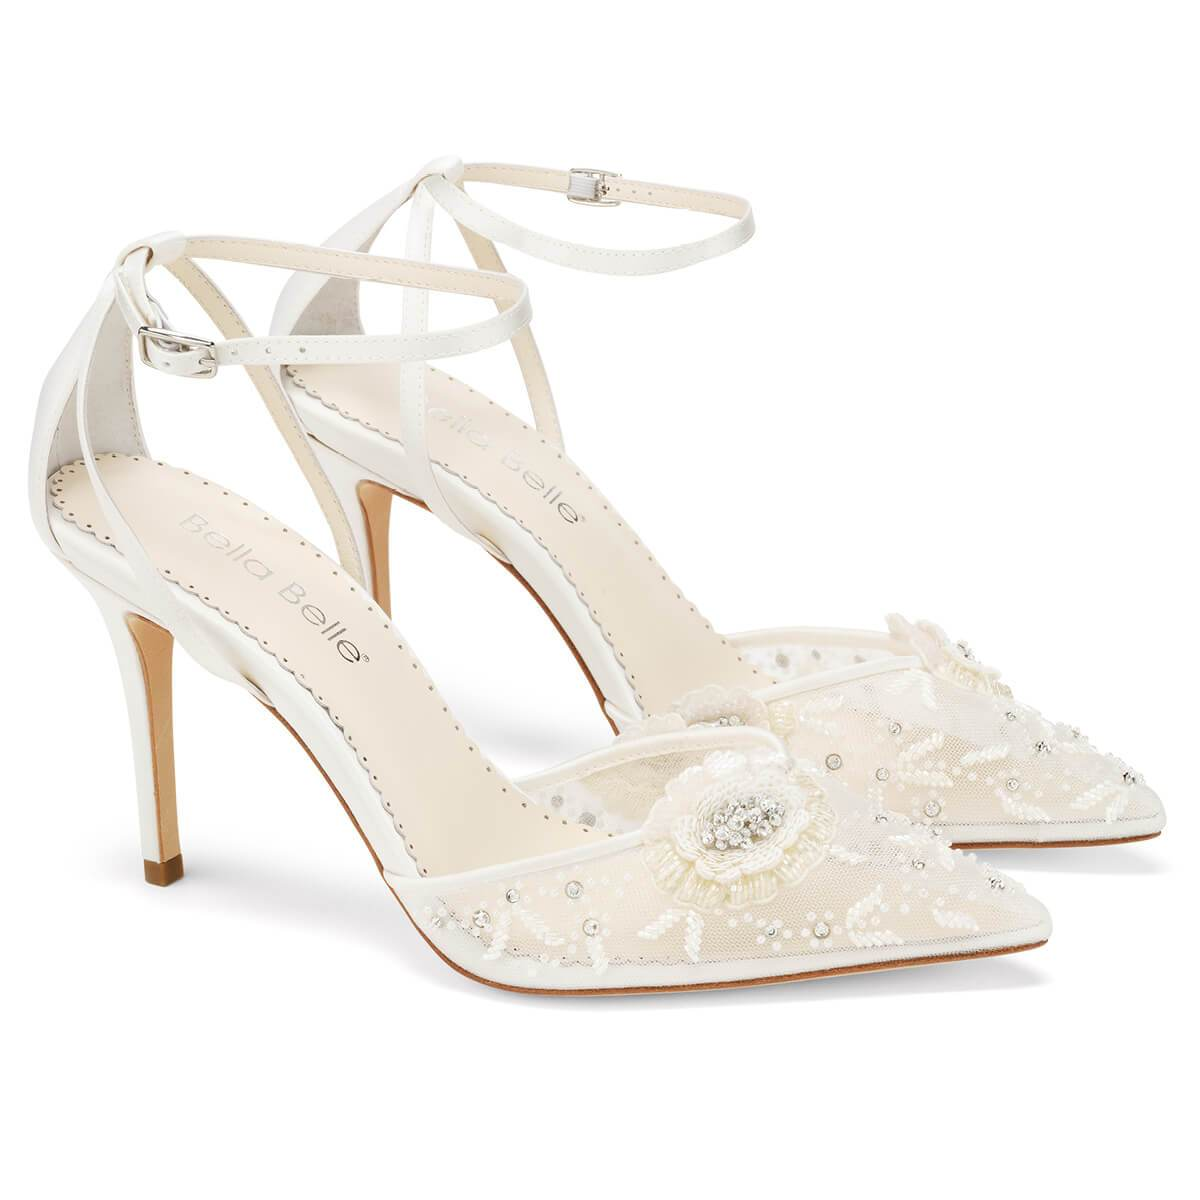 Sequined petals are meticulously stitched together to form two brilliant roses on the toe of Norah, white floral heels. Shimmering beads and sequins catch the light with every glittering step. These ivory flower shoes with ankle strap feature a seductive cutout design at the heel.